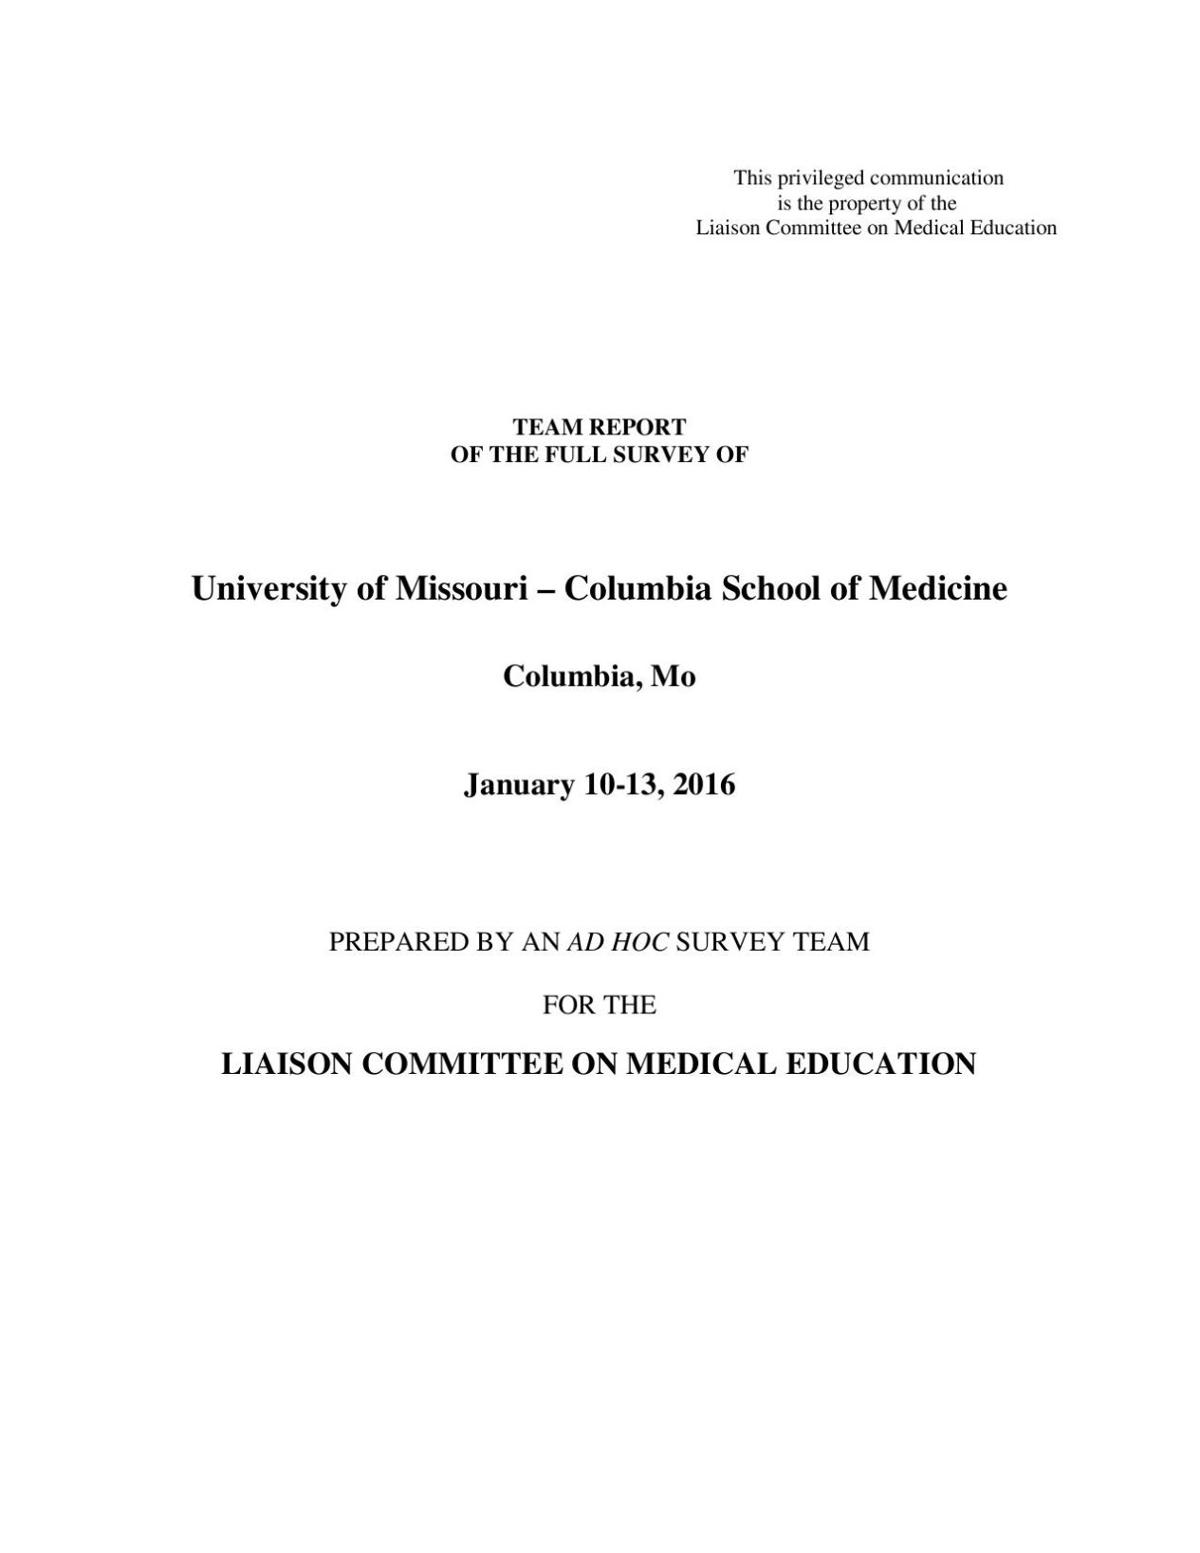 LCME Report